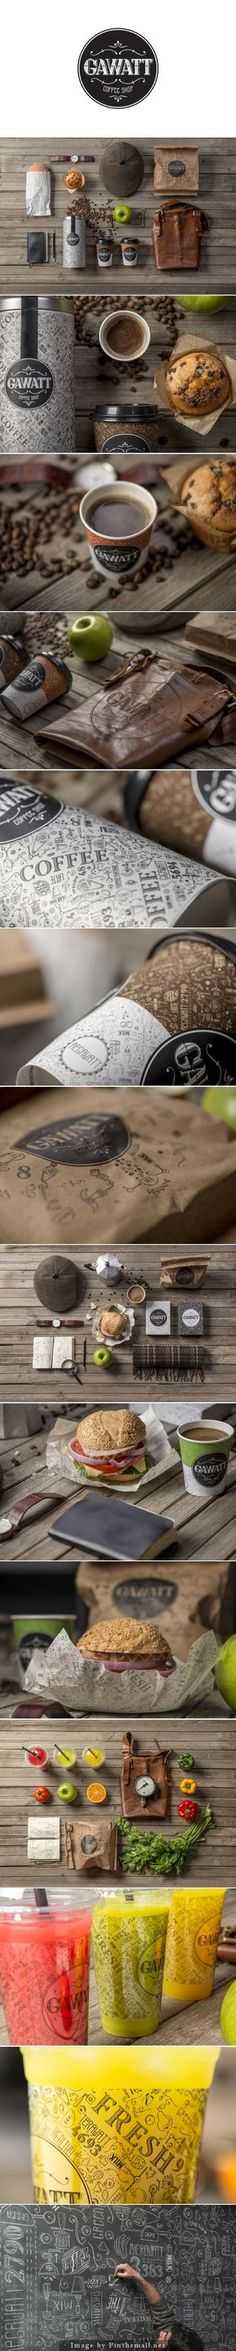 Coffee Shop Branding: Gawatt Take-Out Coffee created by Stepan Azaryan, Karen Gevorgyan and Armenak Grigoryan Food photography #iunnui #ideas